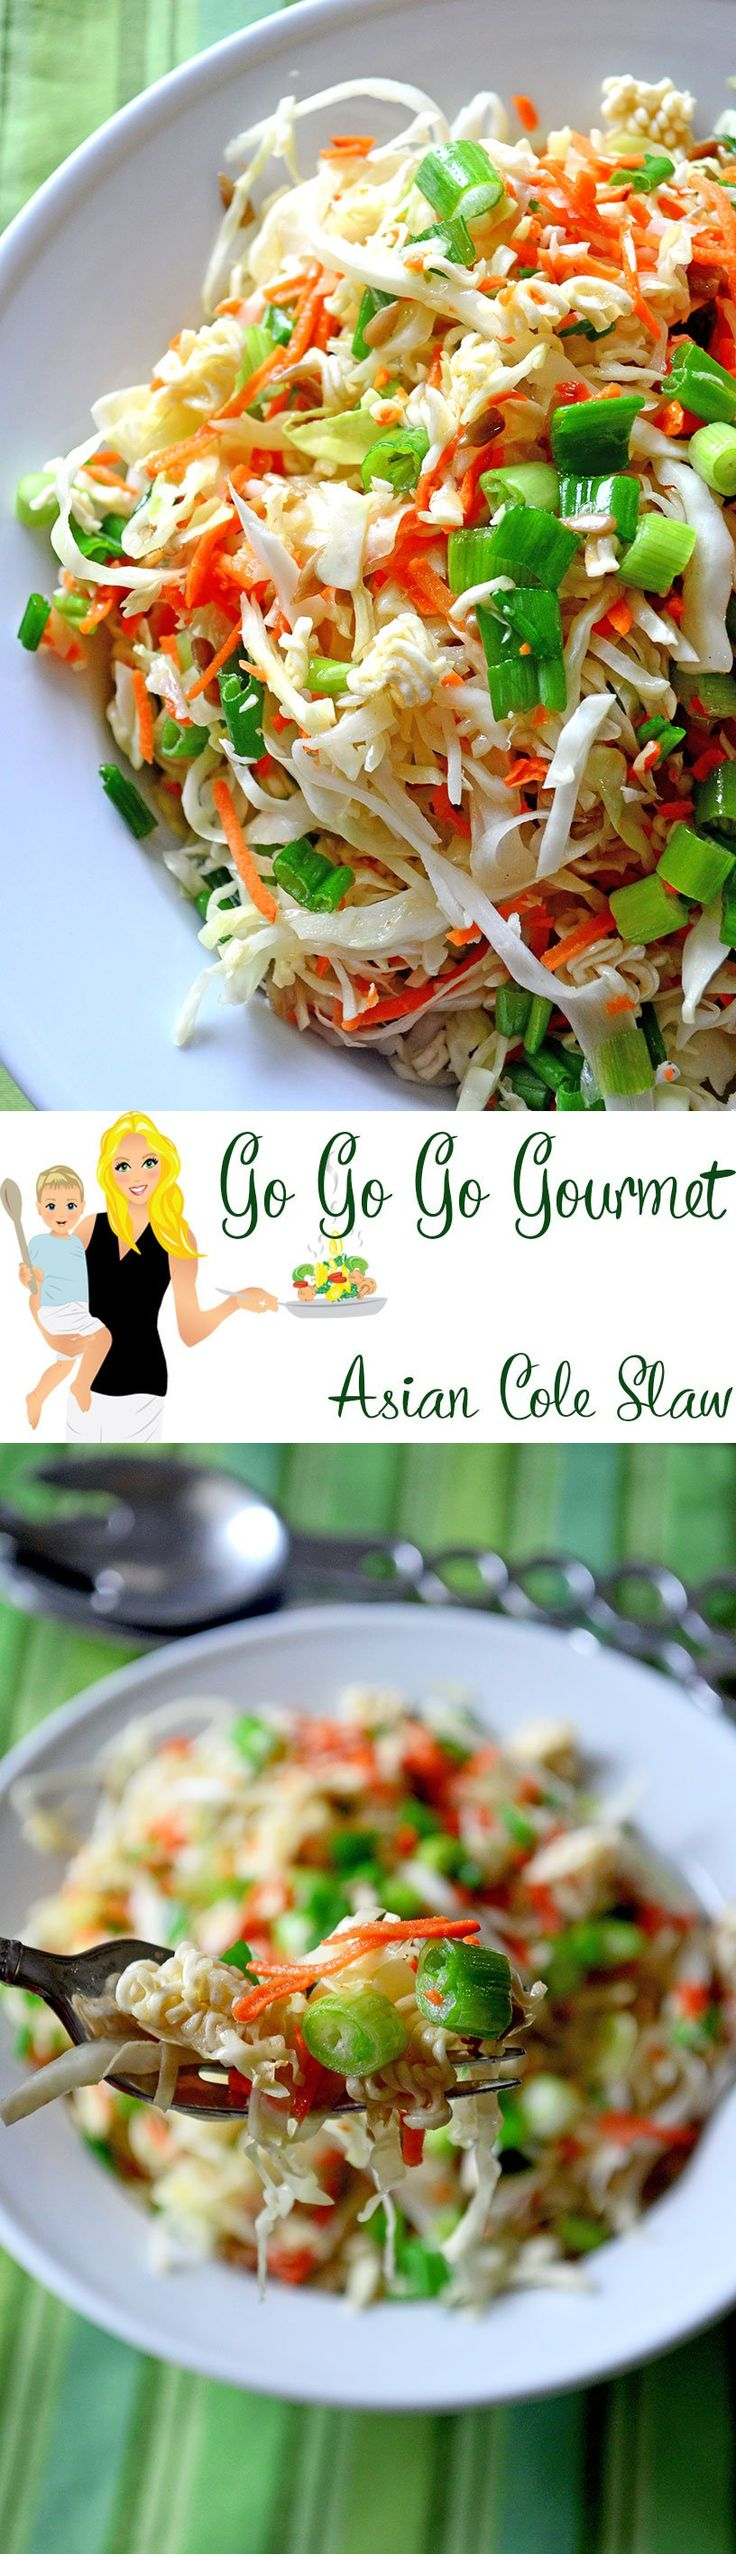 Light, crisp and delicious Asian coleslaw!